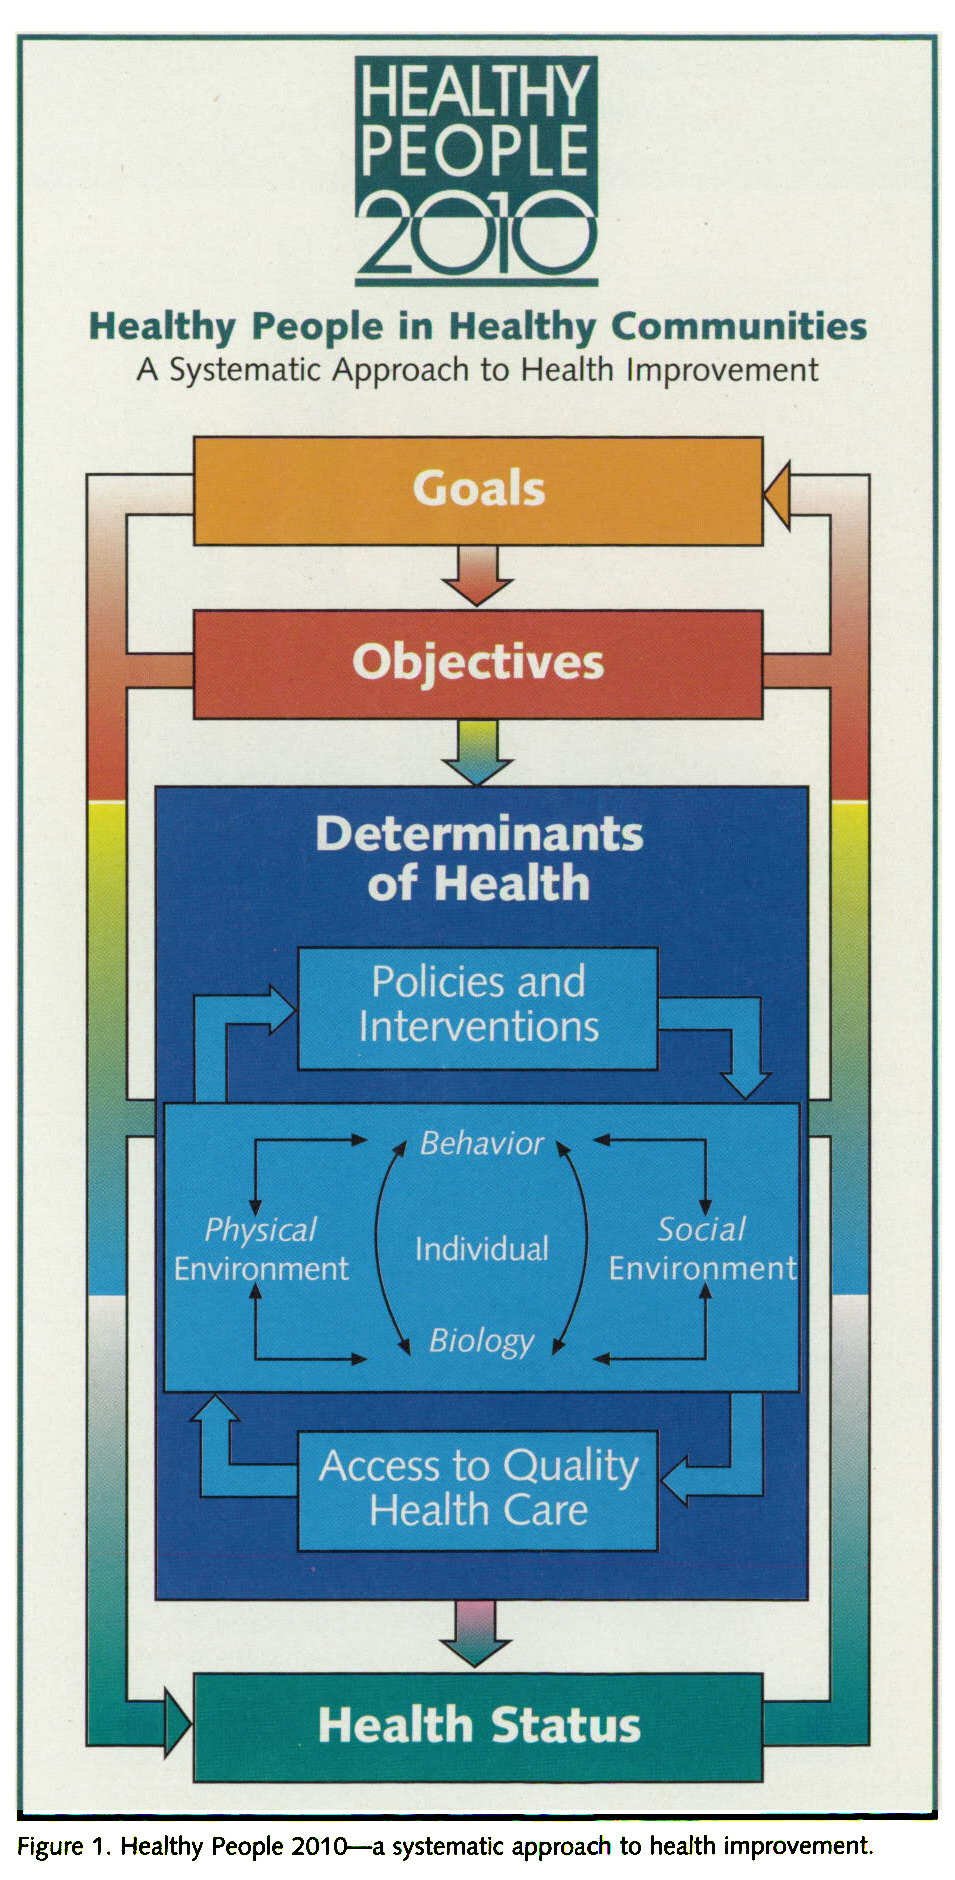 Figure 1. Healthy People 2010 - a systematic approach to health improvement.